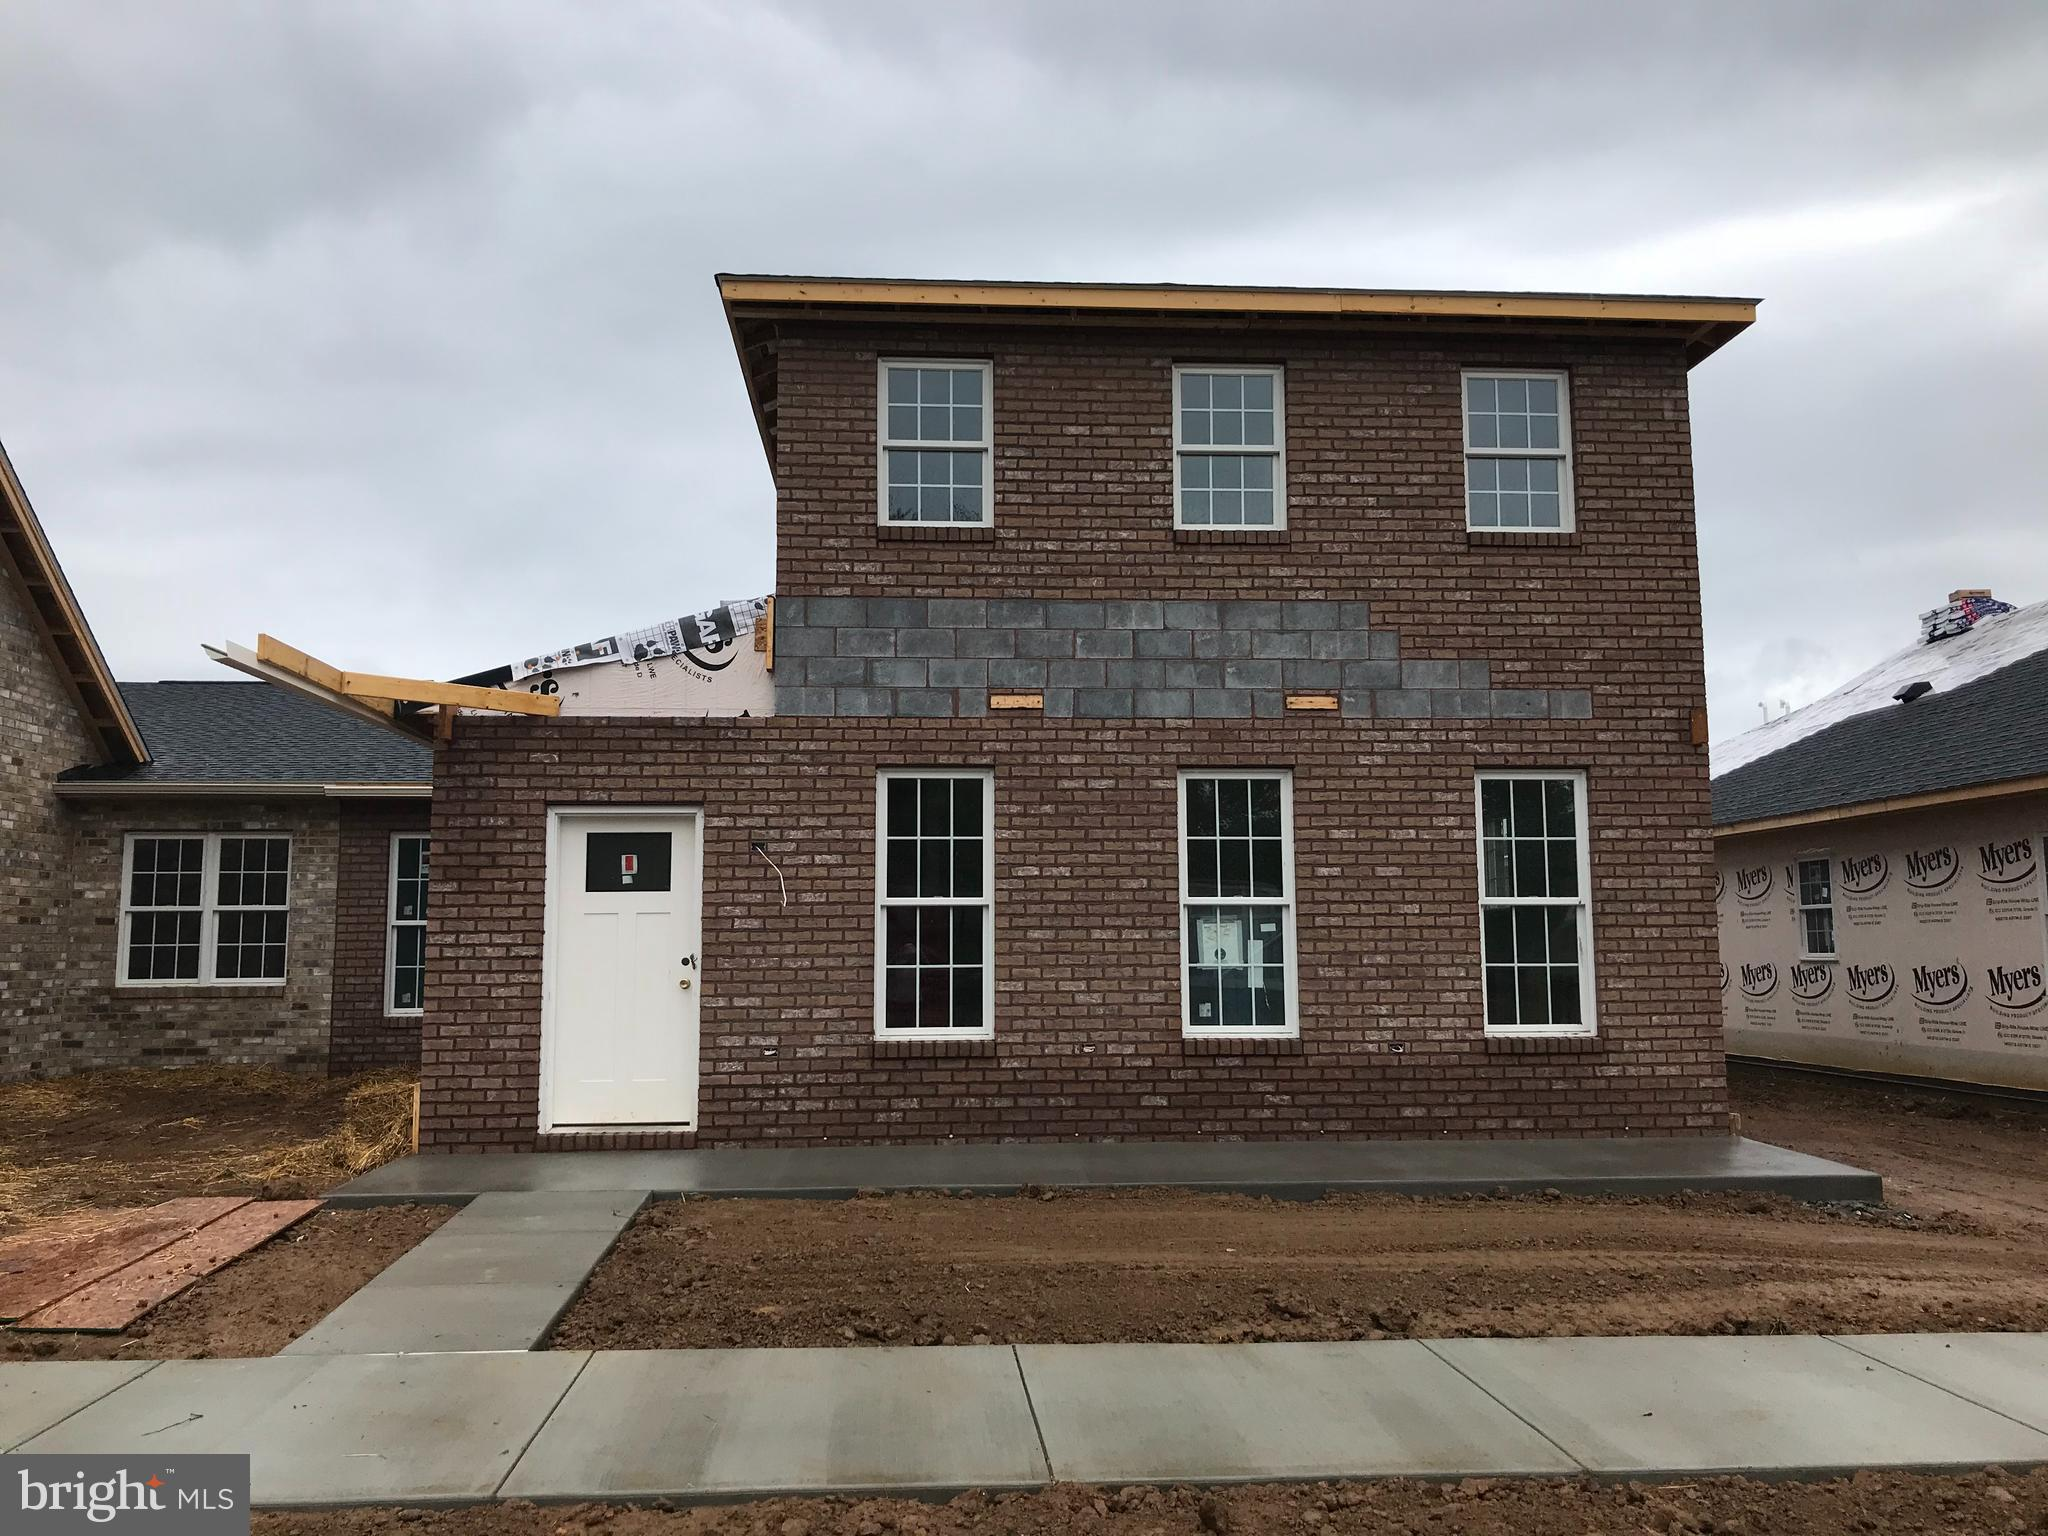 1743 MERIDIAN DRIVE, HAGERSTOWN, Maryland 21742, 3 Bedrooms Bedrooms, ,3 BathroomsBathrooms,Townhouse,For Sale,1743 MERIDIAN DRIVE,MDWA178284